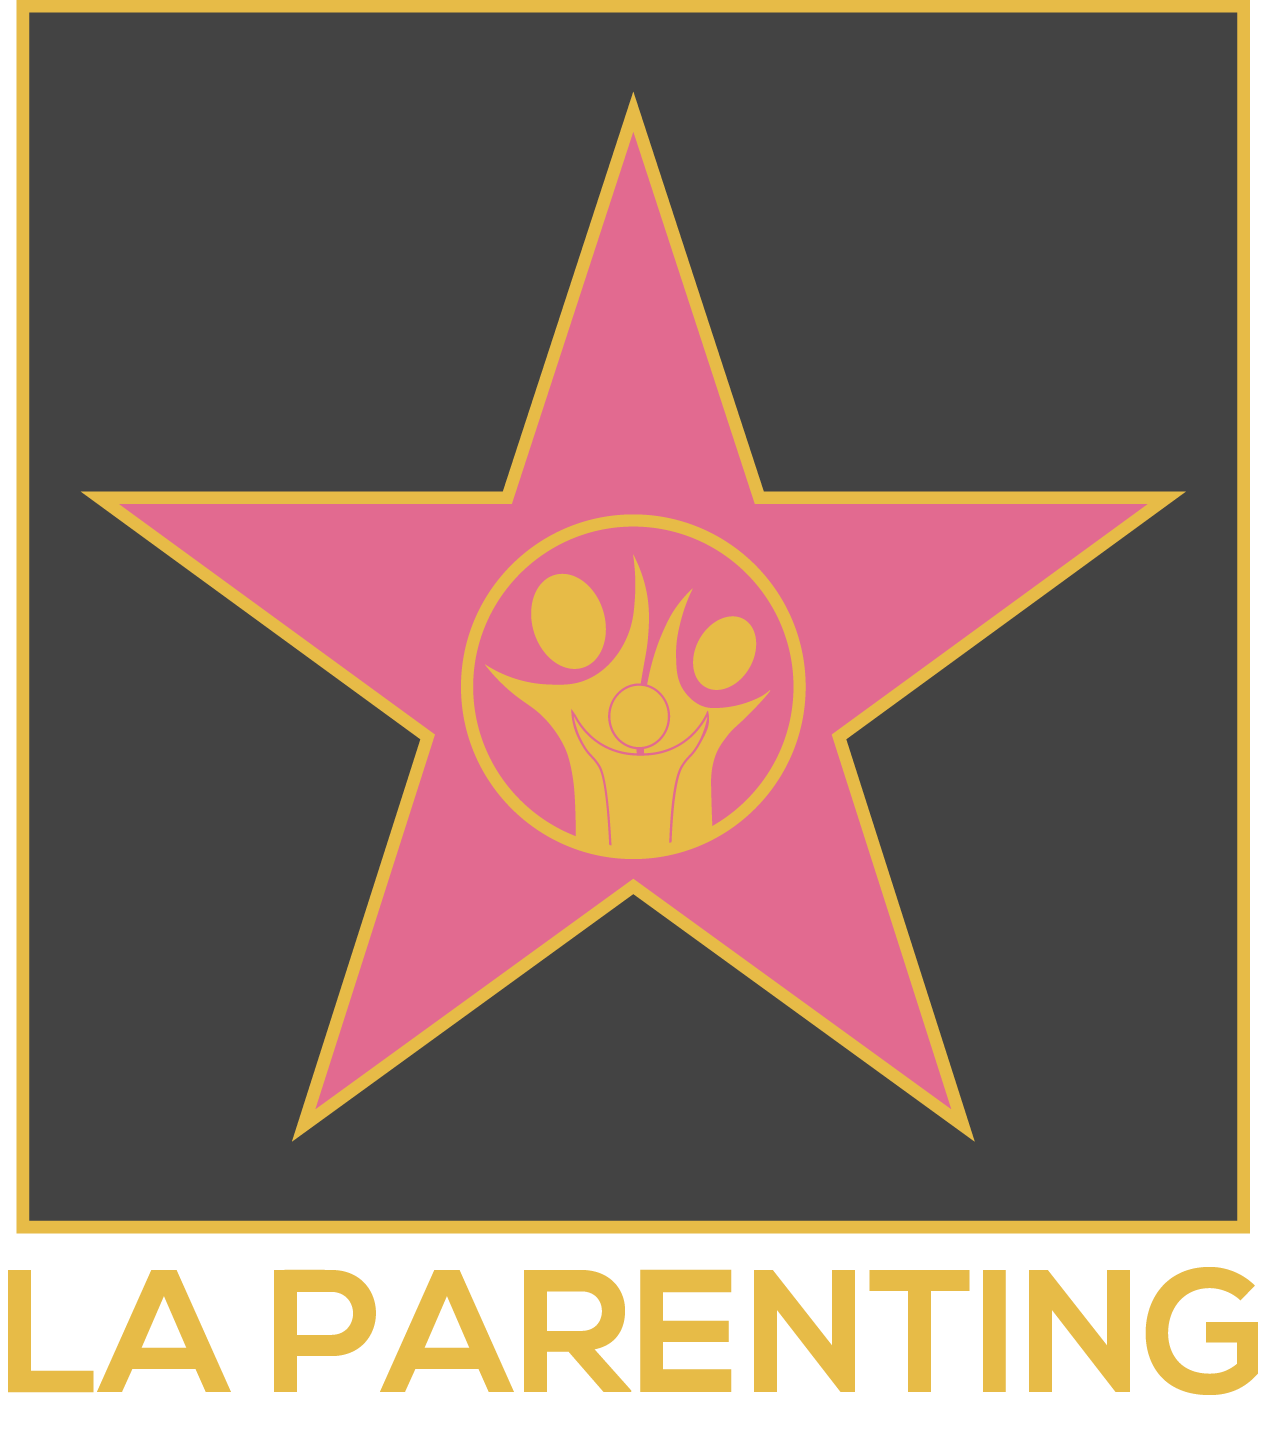 You're in LA, you're a parent. What are you to do?